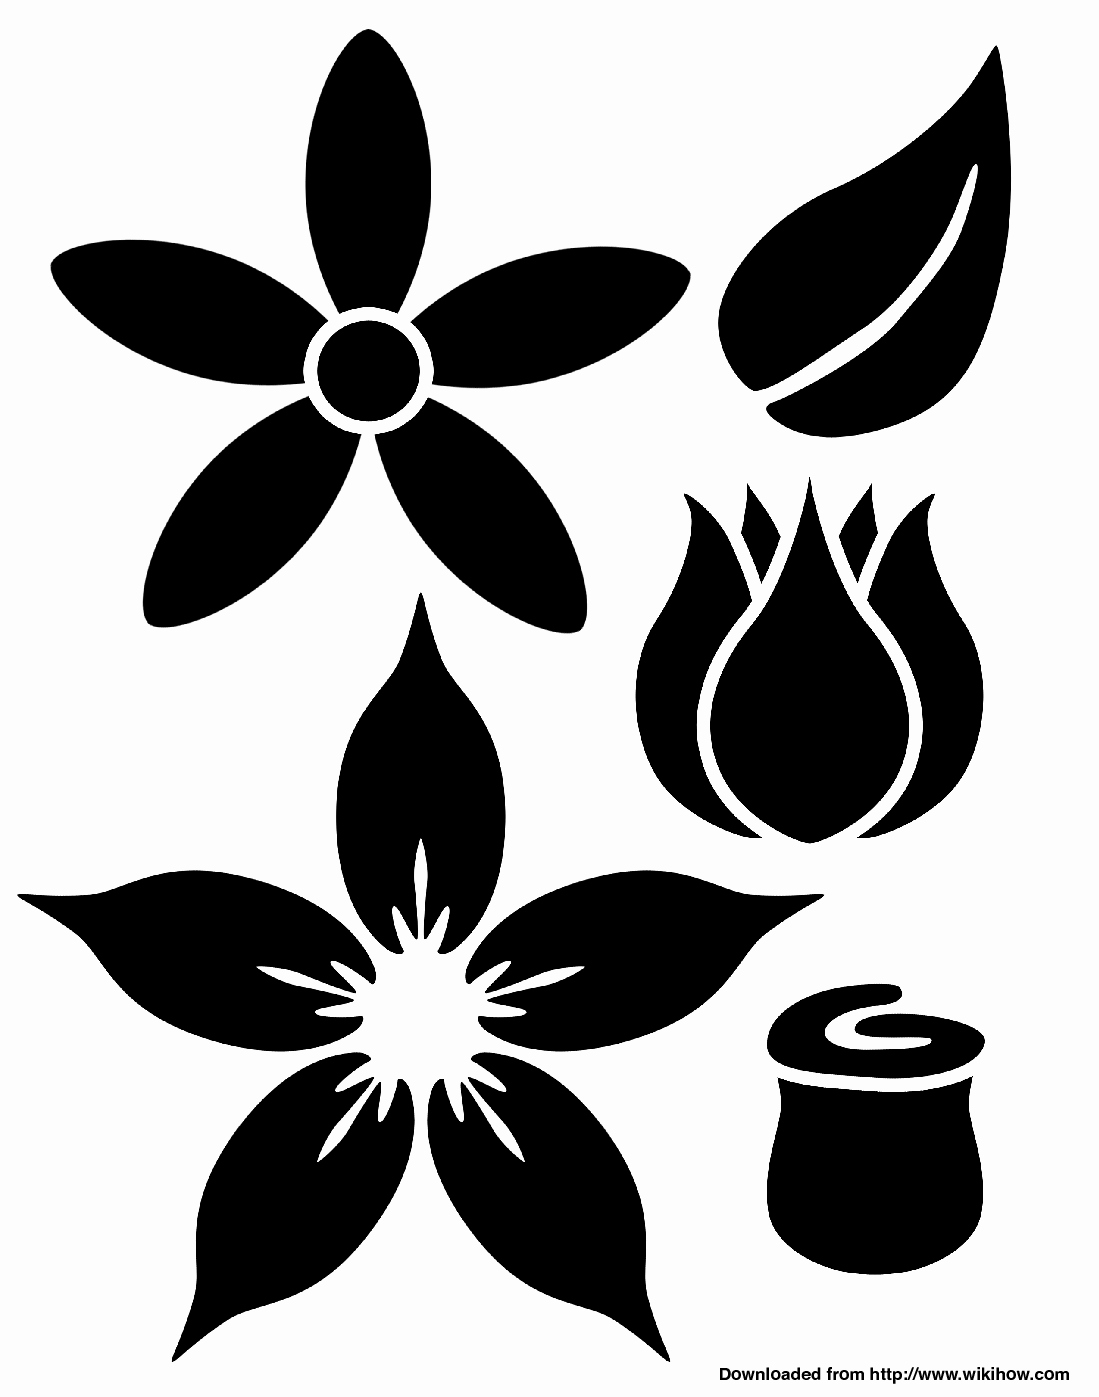 Free Printable Stencils for Painting New Free Stencil Download Free Clip Art Free Clip Art On